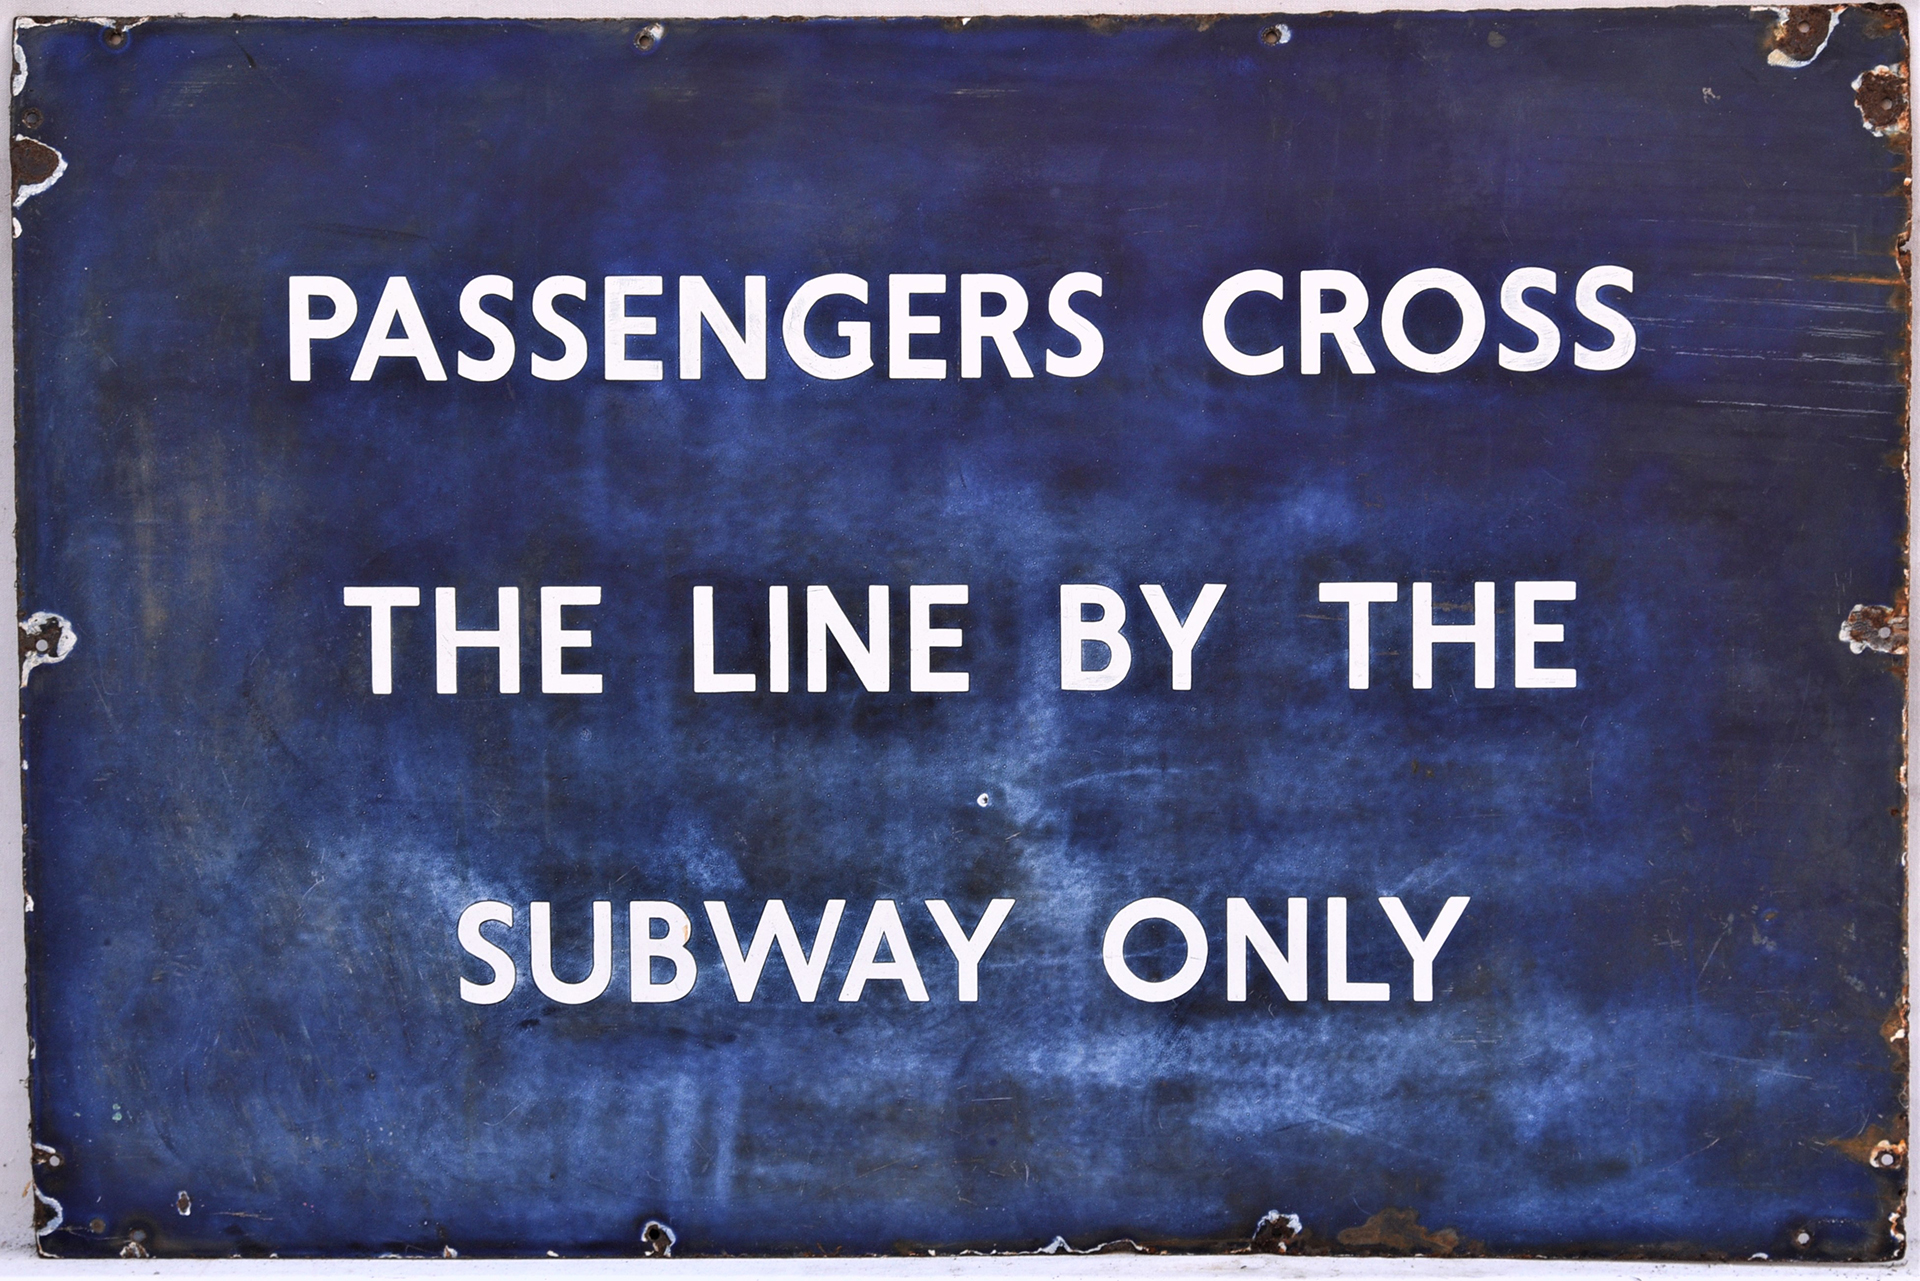 LNER/BR(E) enamel sign. PASSENGERS CROSS THE LINE BY THE SUBWAY ONLY. Measures 36in x 18in.